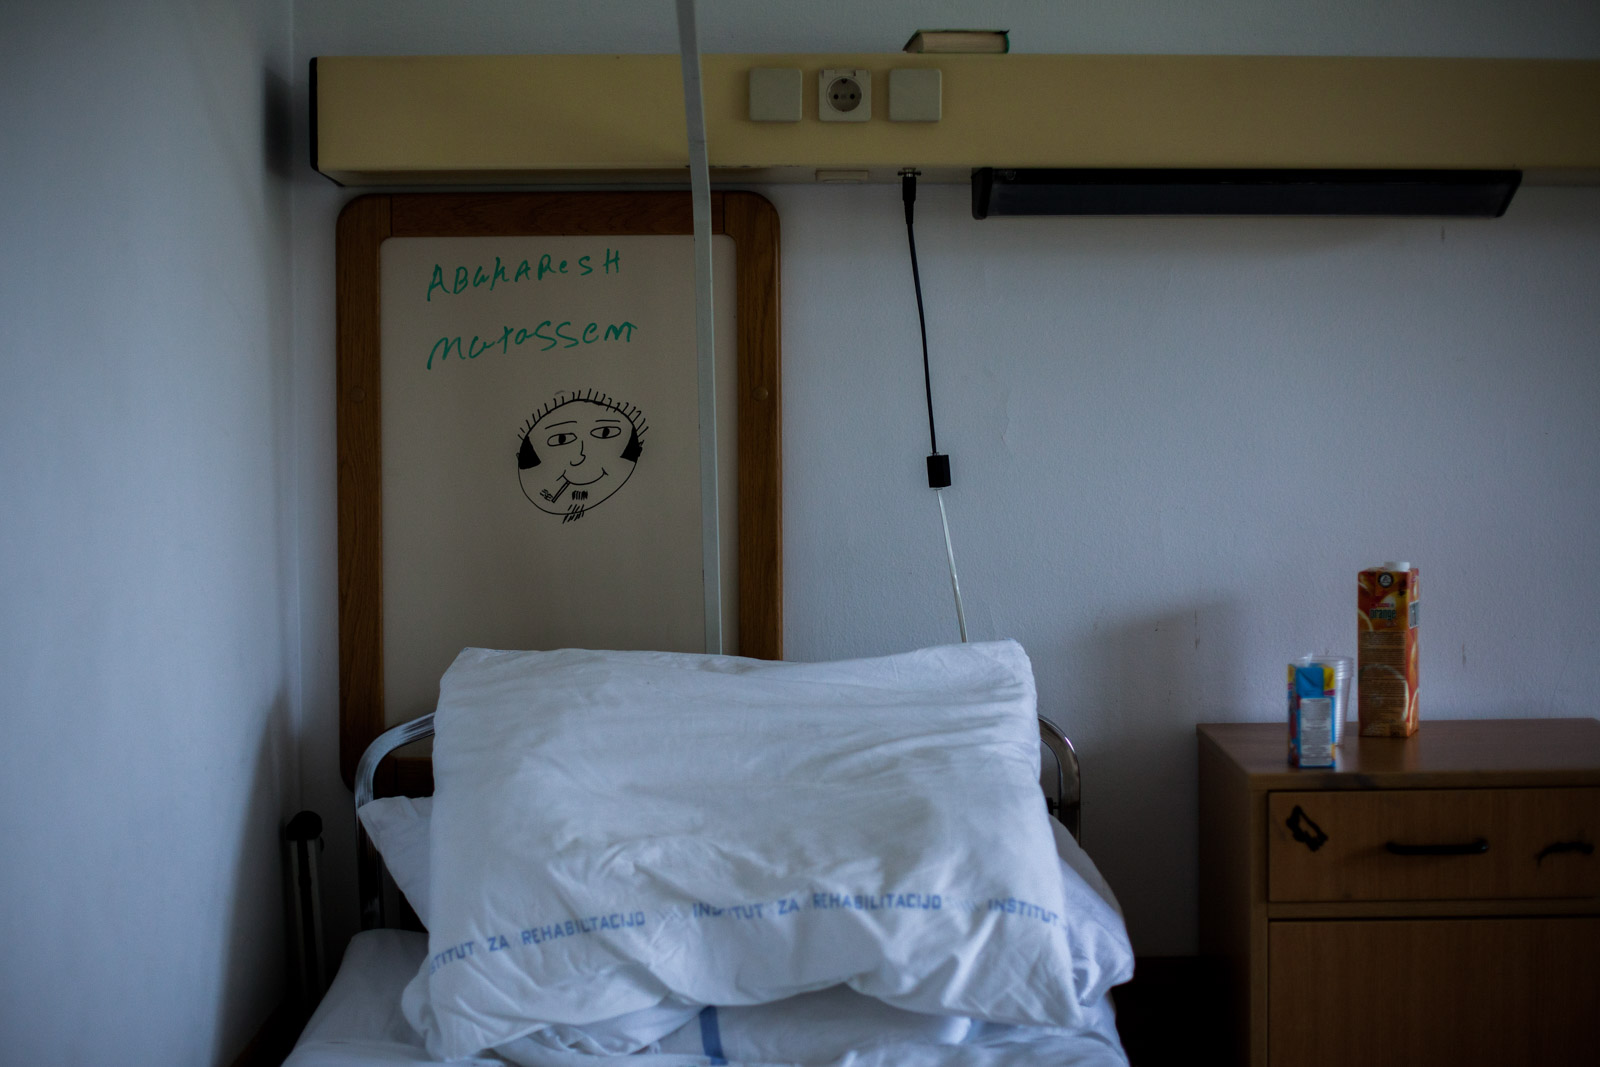 Ljubljana, Slovenia - October 15, 2012: Bed in a room of Mutassem Abukaresh in University Rehabilitation Center Soča in Slovenia remains empty, as he was transferred to an infection clinic due to breathing difficulties during his last days of rehabilitation process.